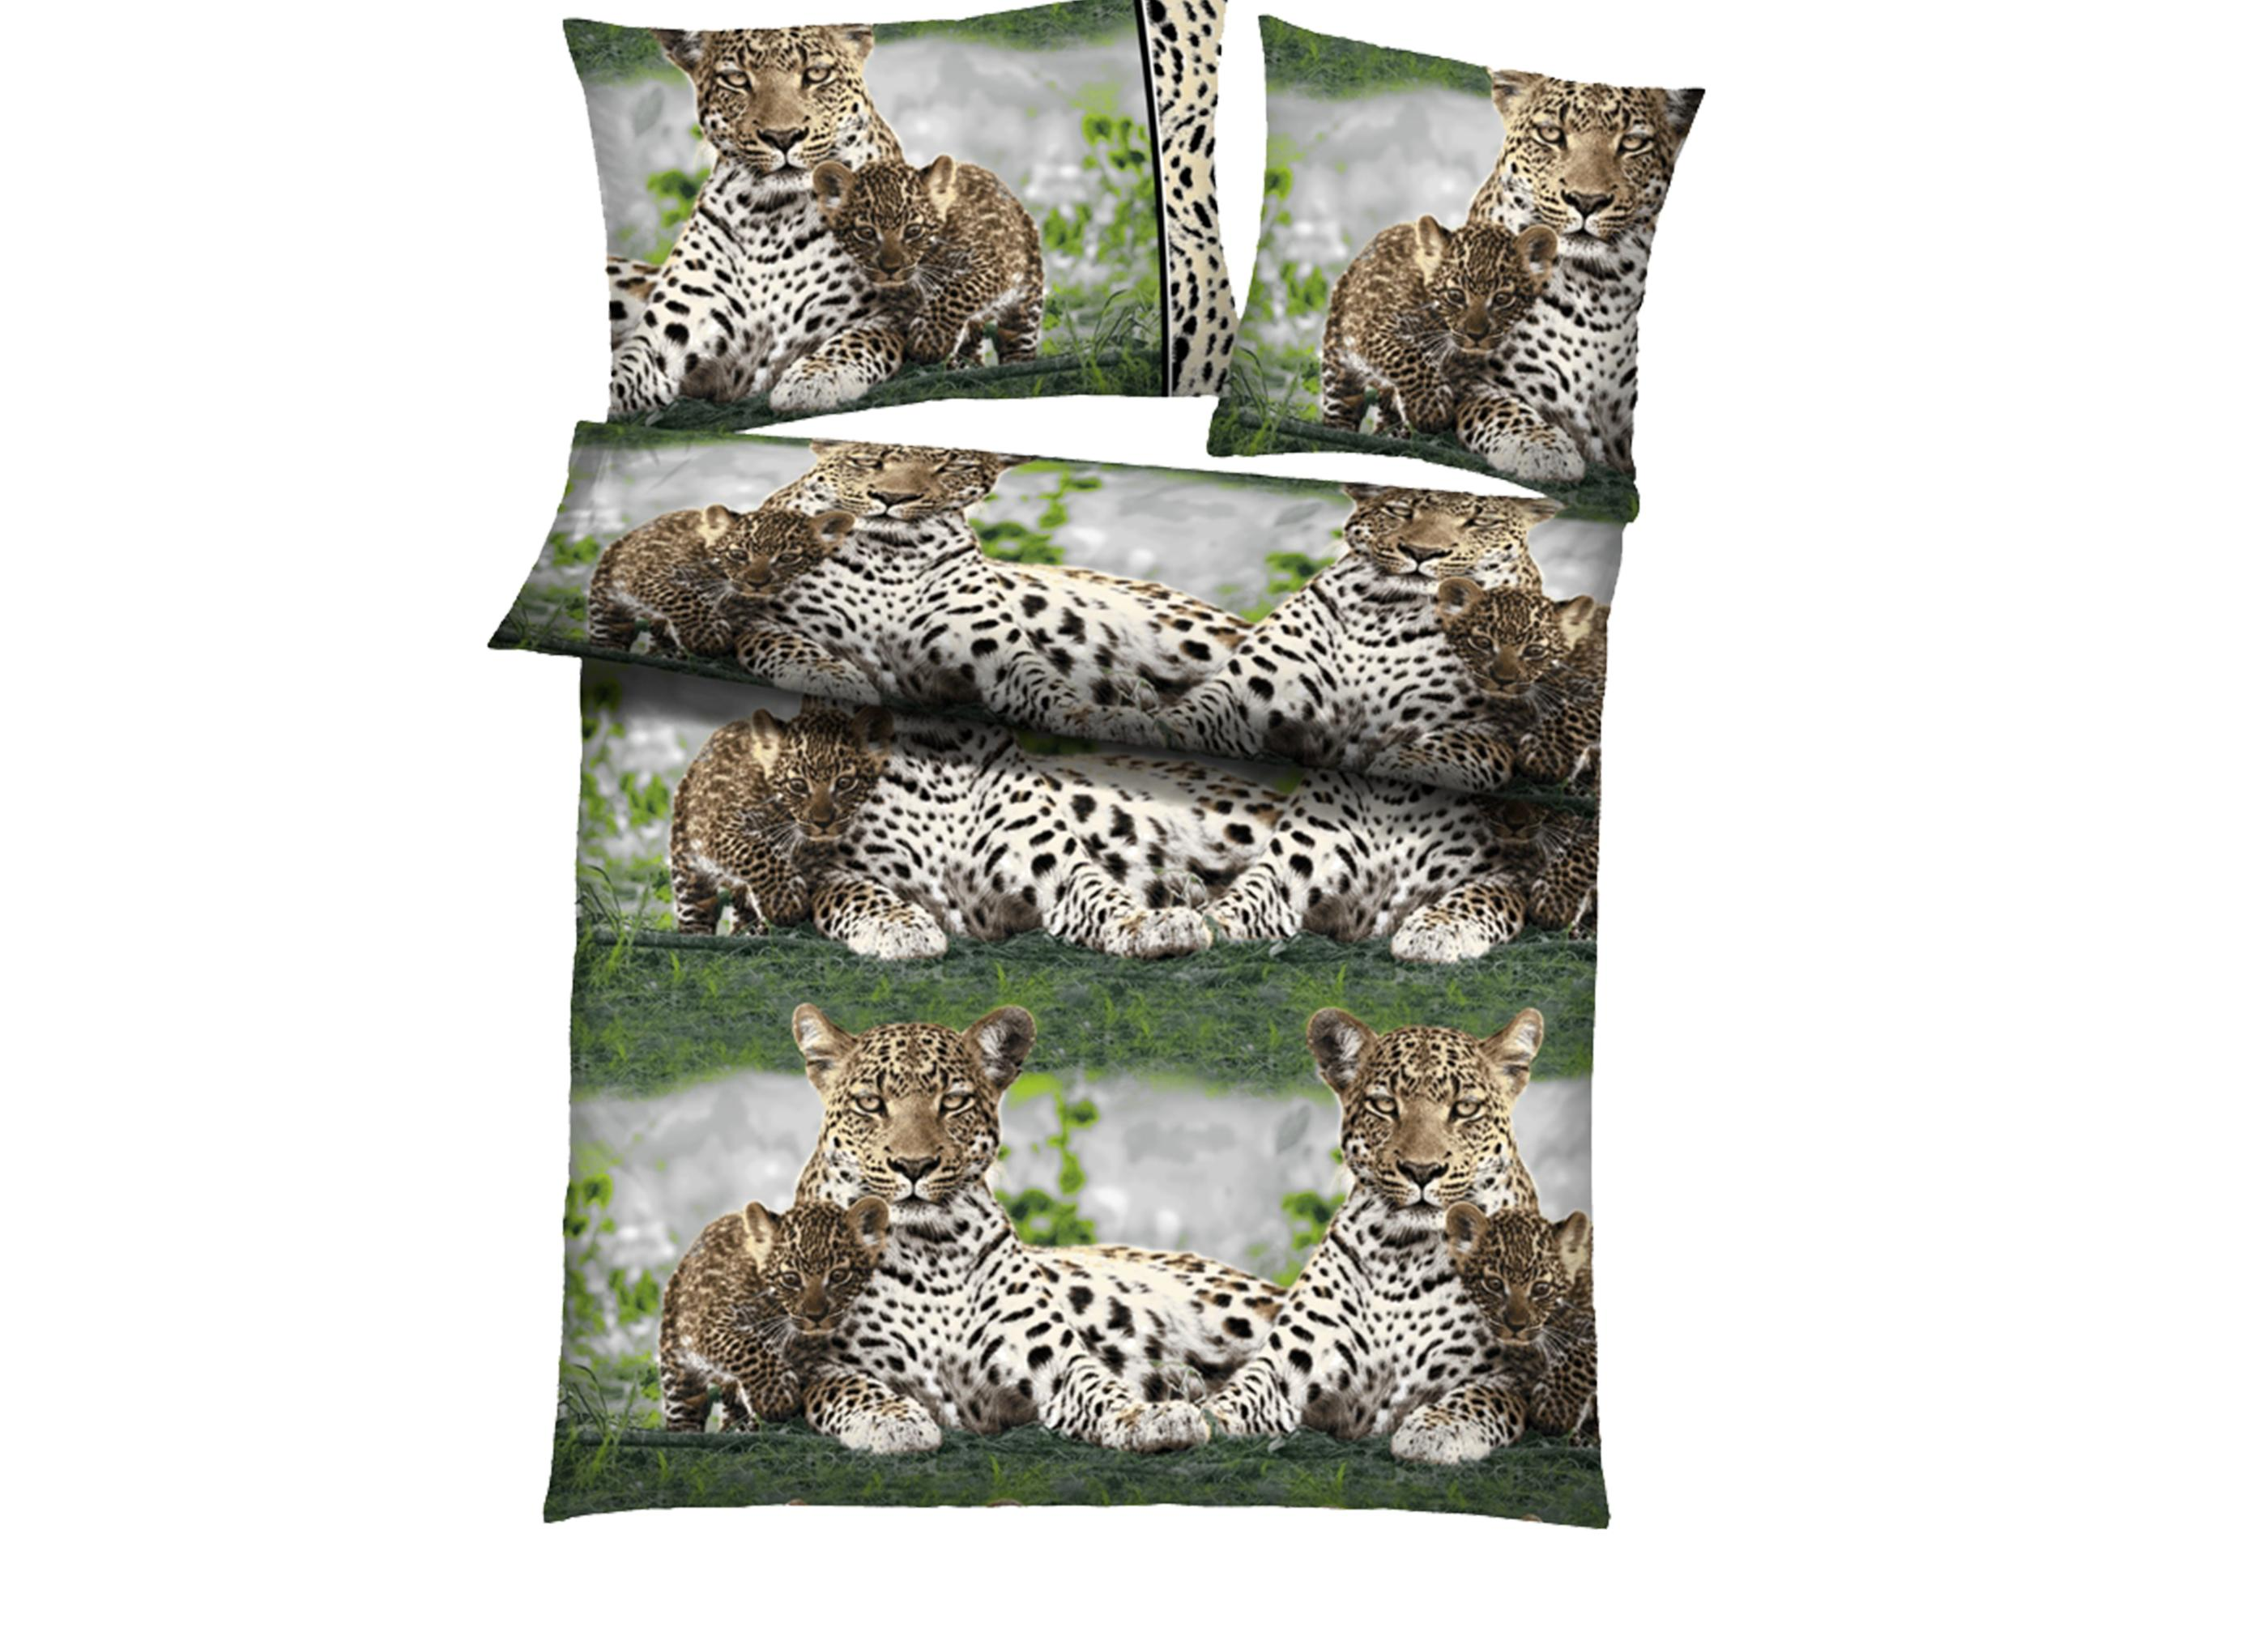 4tlg microfaser bettw sche all seasons f r winter sommer leopard baby 135x200cm ebay. Black Bedroom Furniture Sets. Home Design Ideas